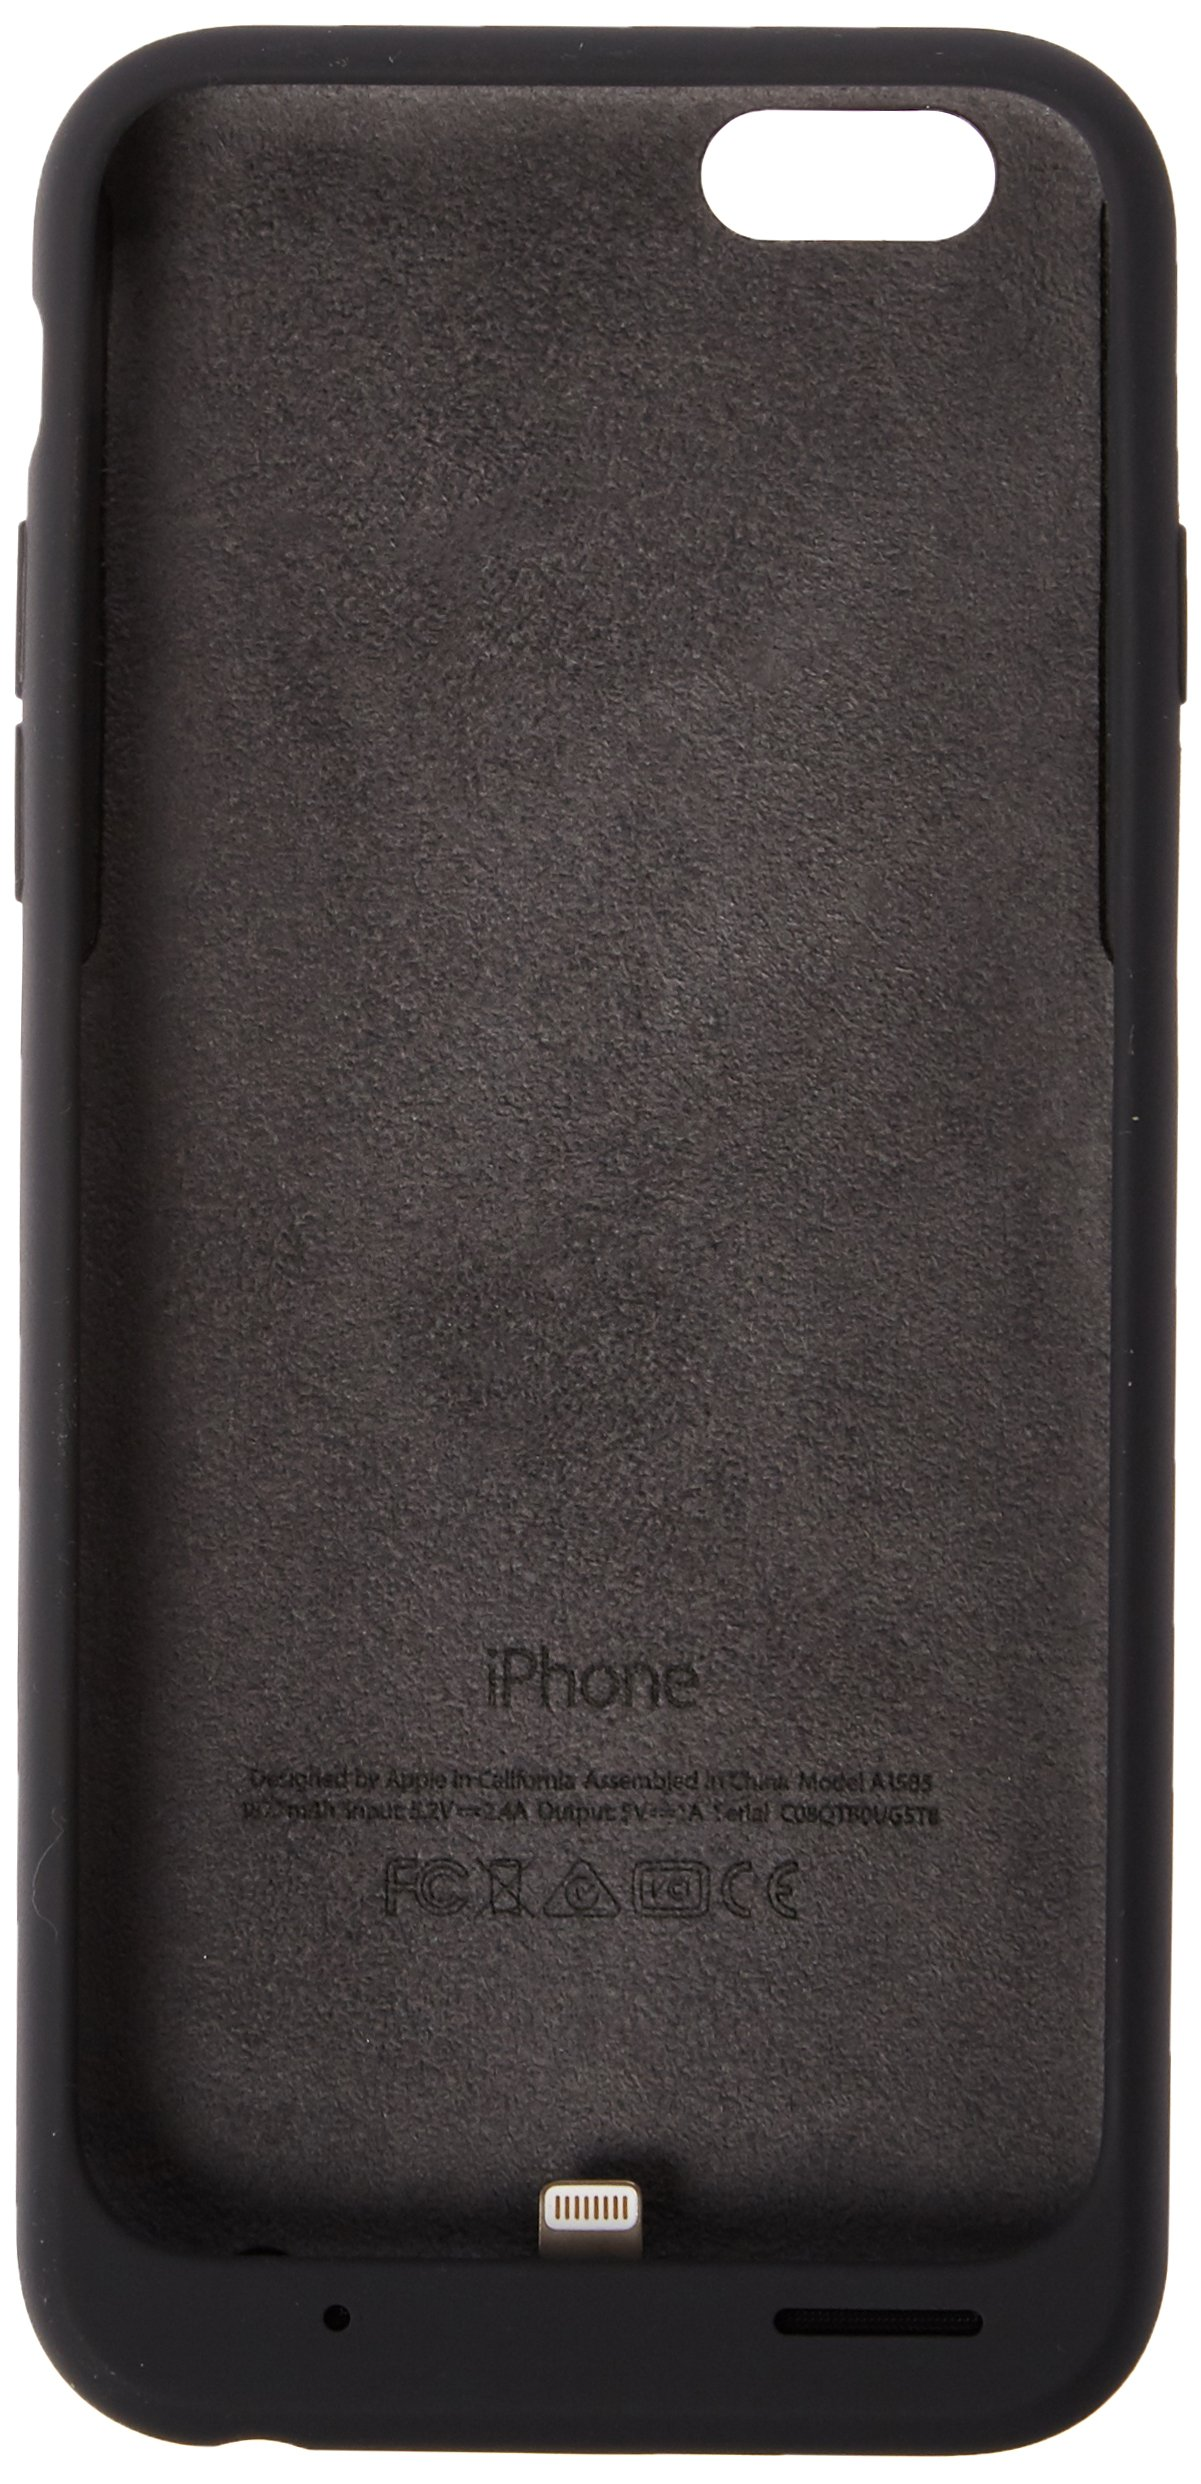 Apple Charcoal Gray Battery Case for iPhone 6 and 6S - Retail Packaging by Apple (Image #2)